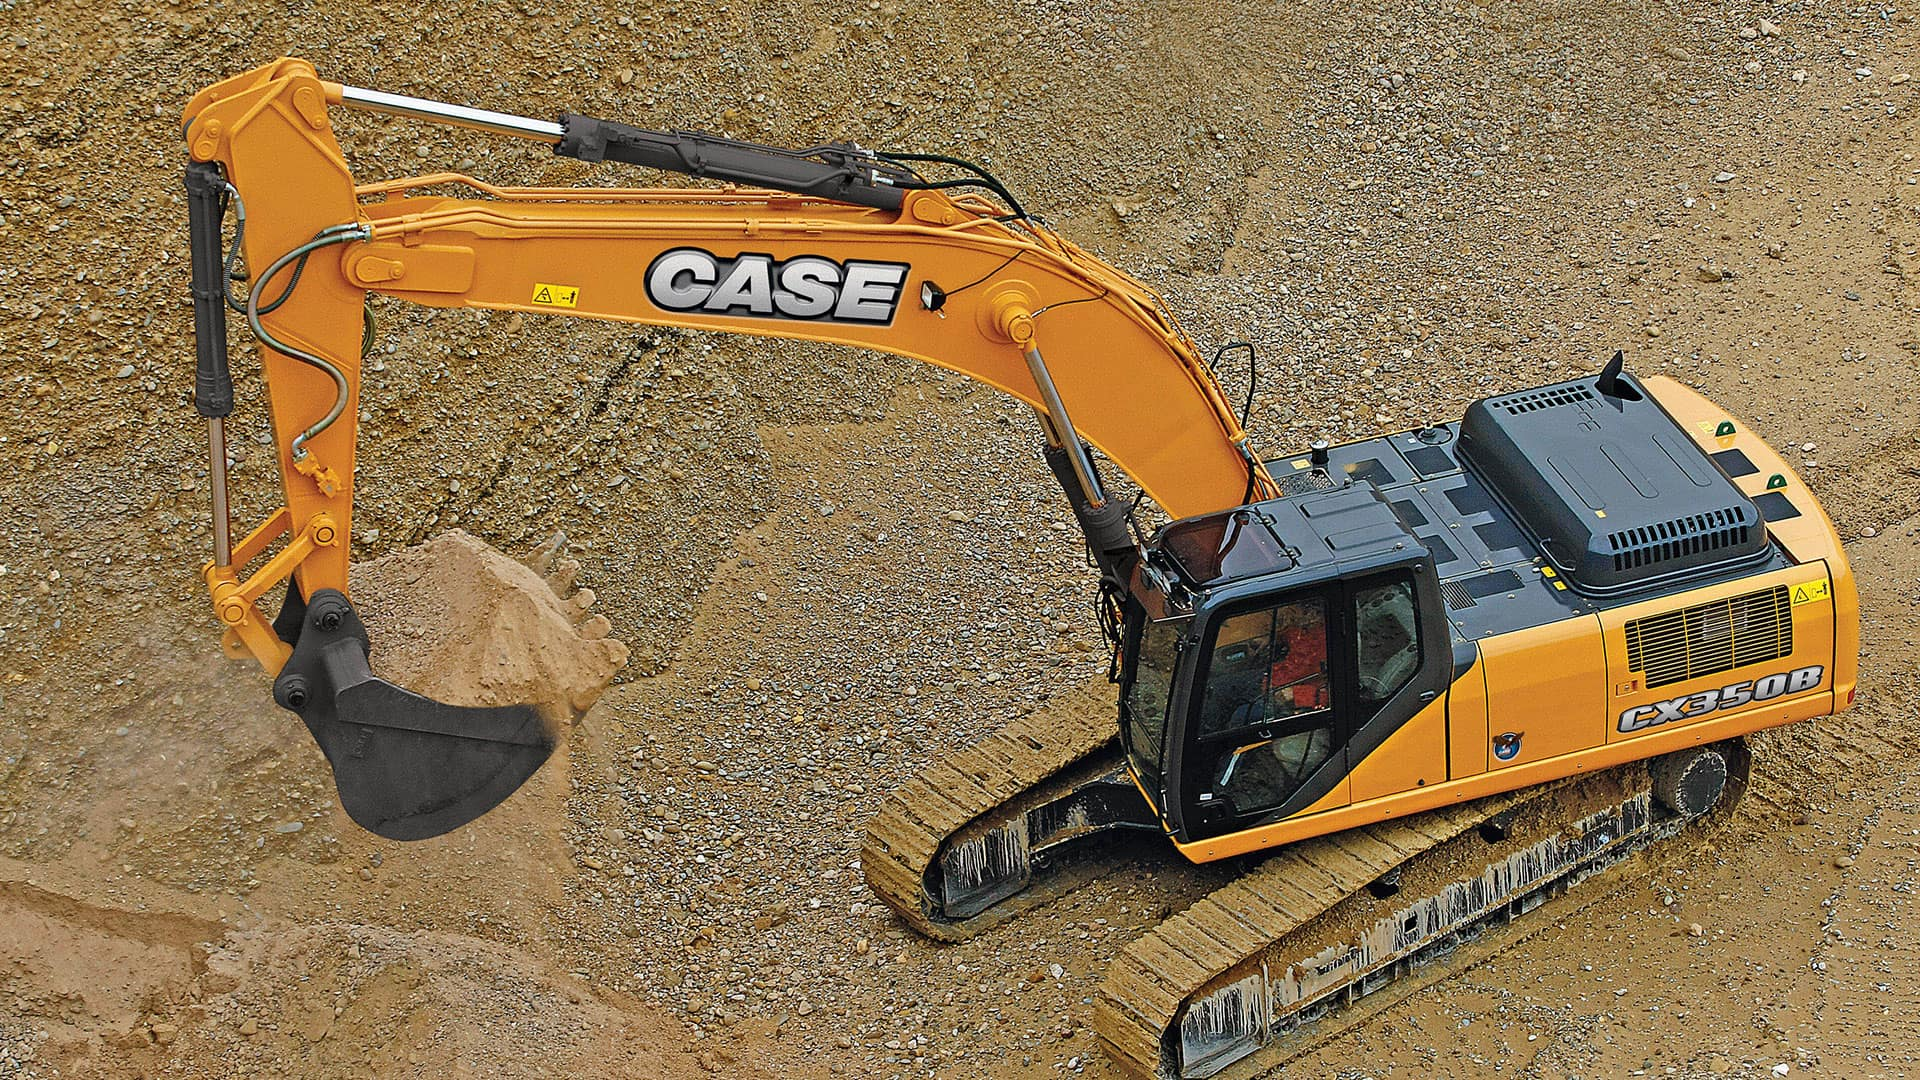 CX350B Large-sized Excavator | CASE